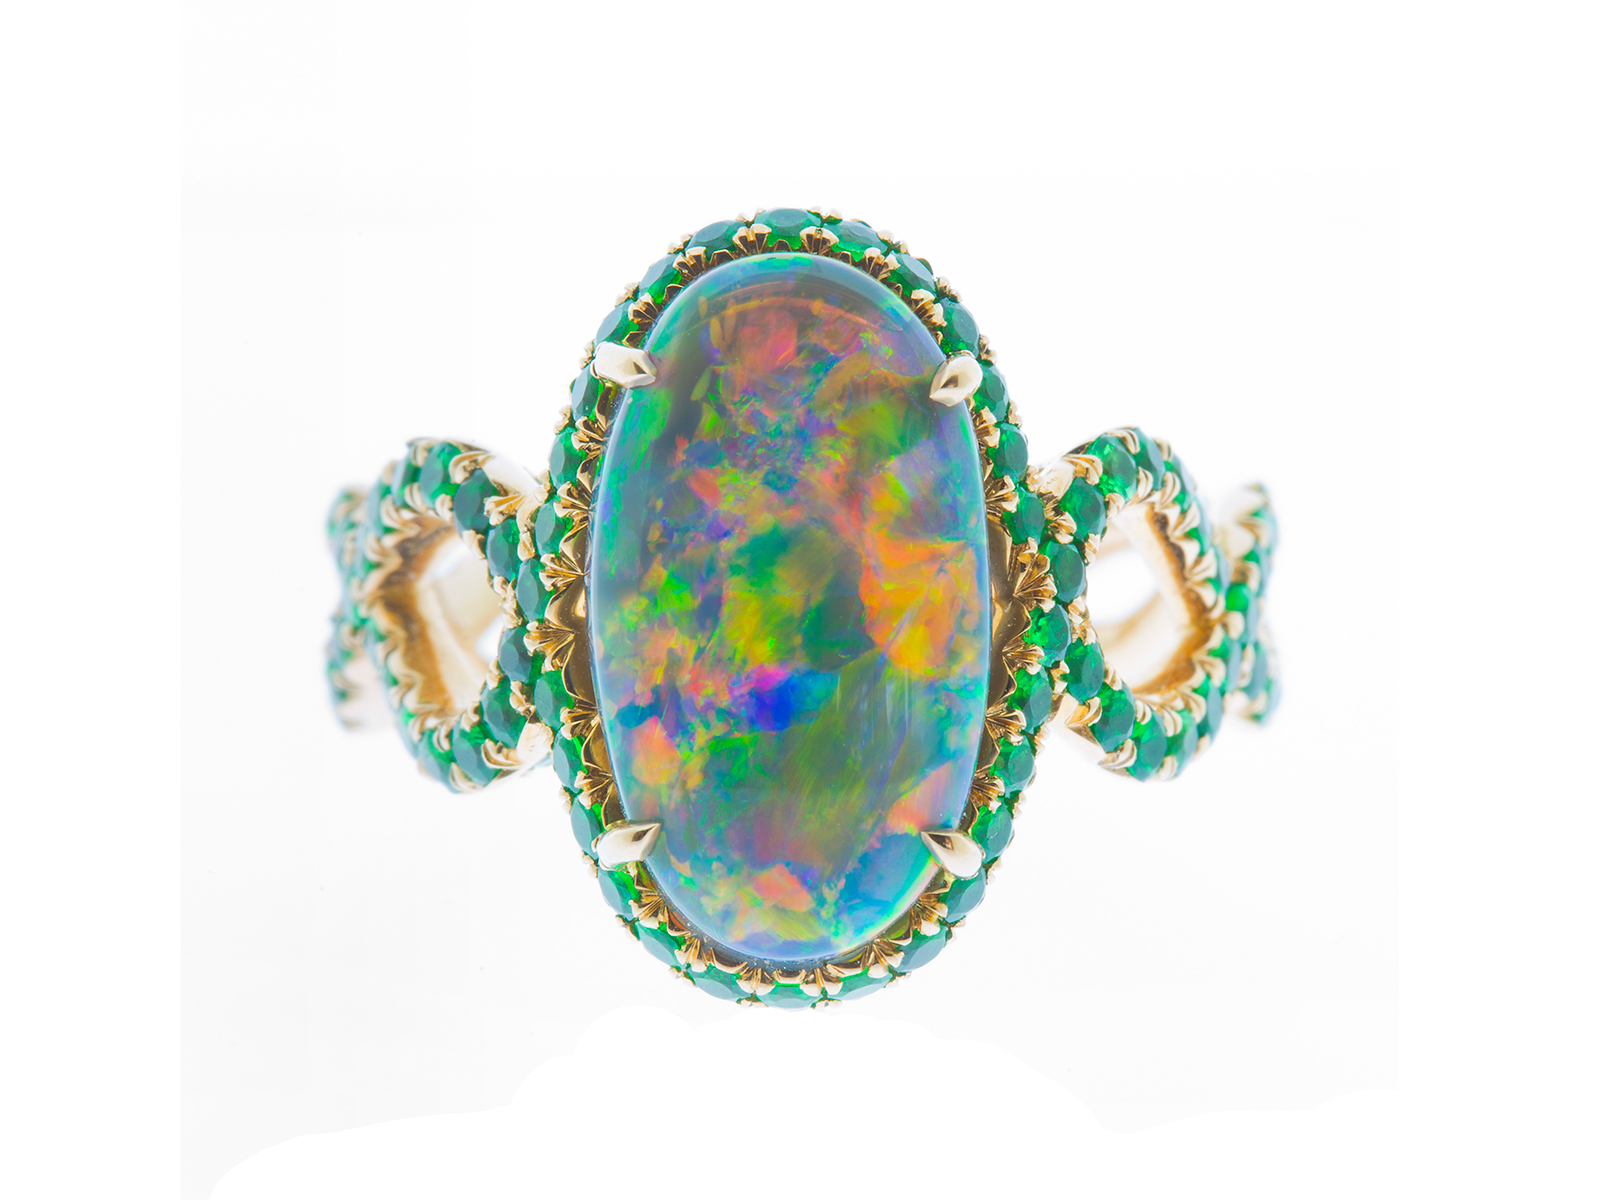 Statement Gemstones Enchanting Beauty Inside And Out